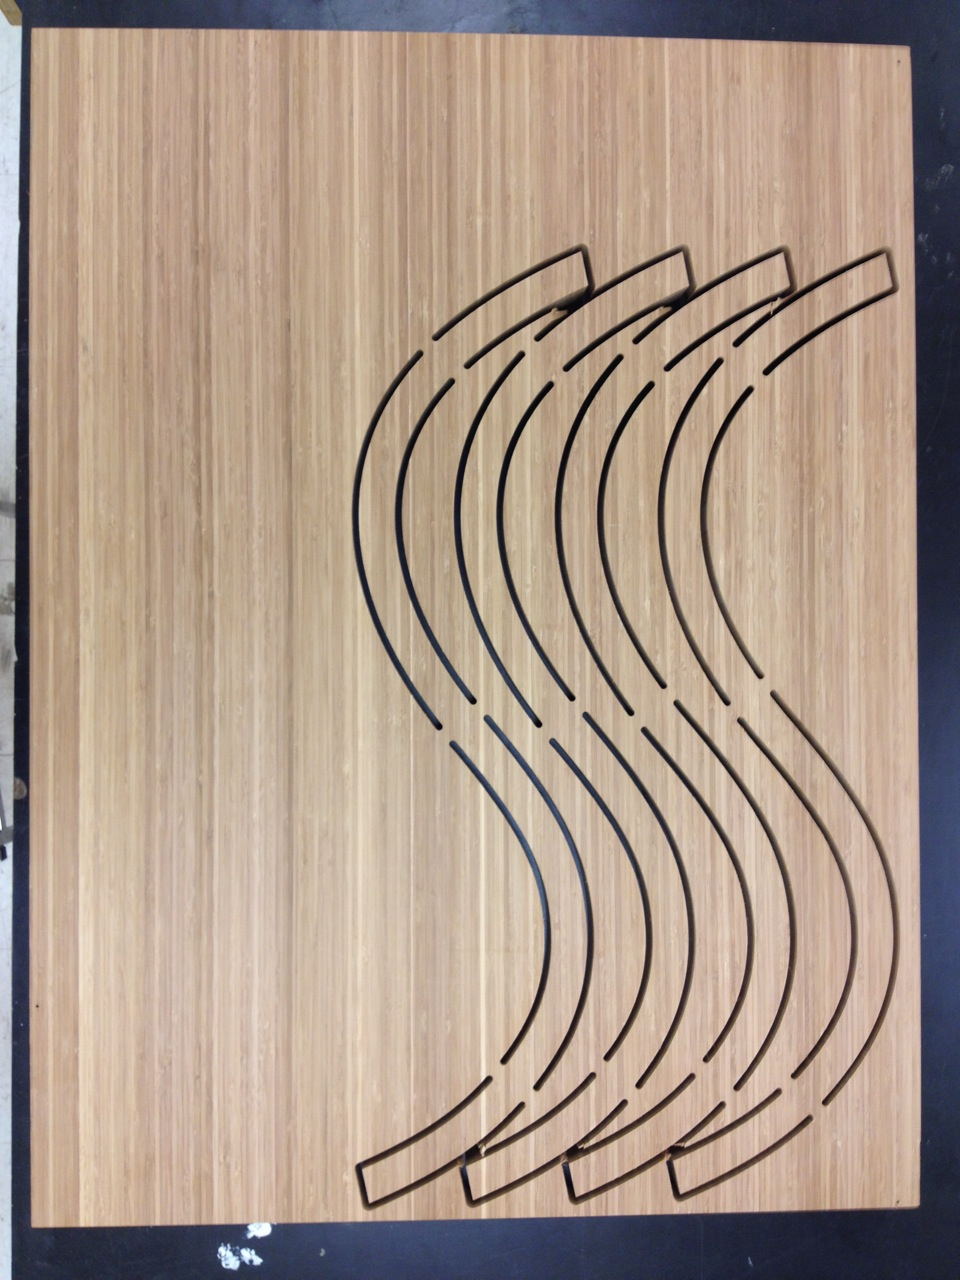 The coffee table's four curves after being cut by a shopbot. Tabs are left in order to prevent the curves from moving during cutting